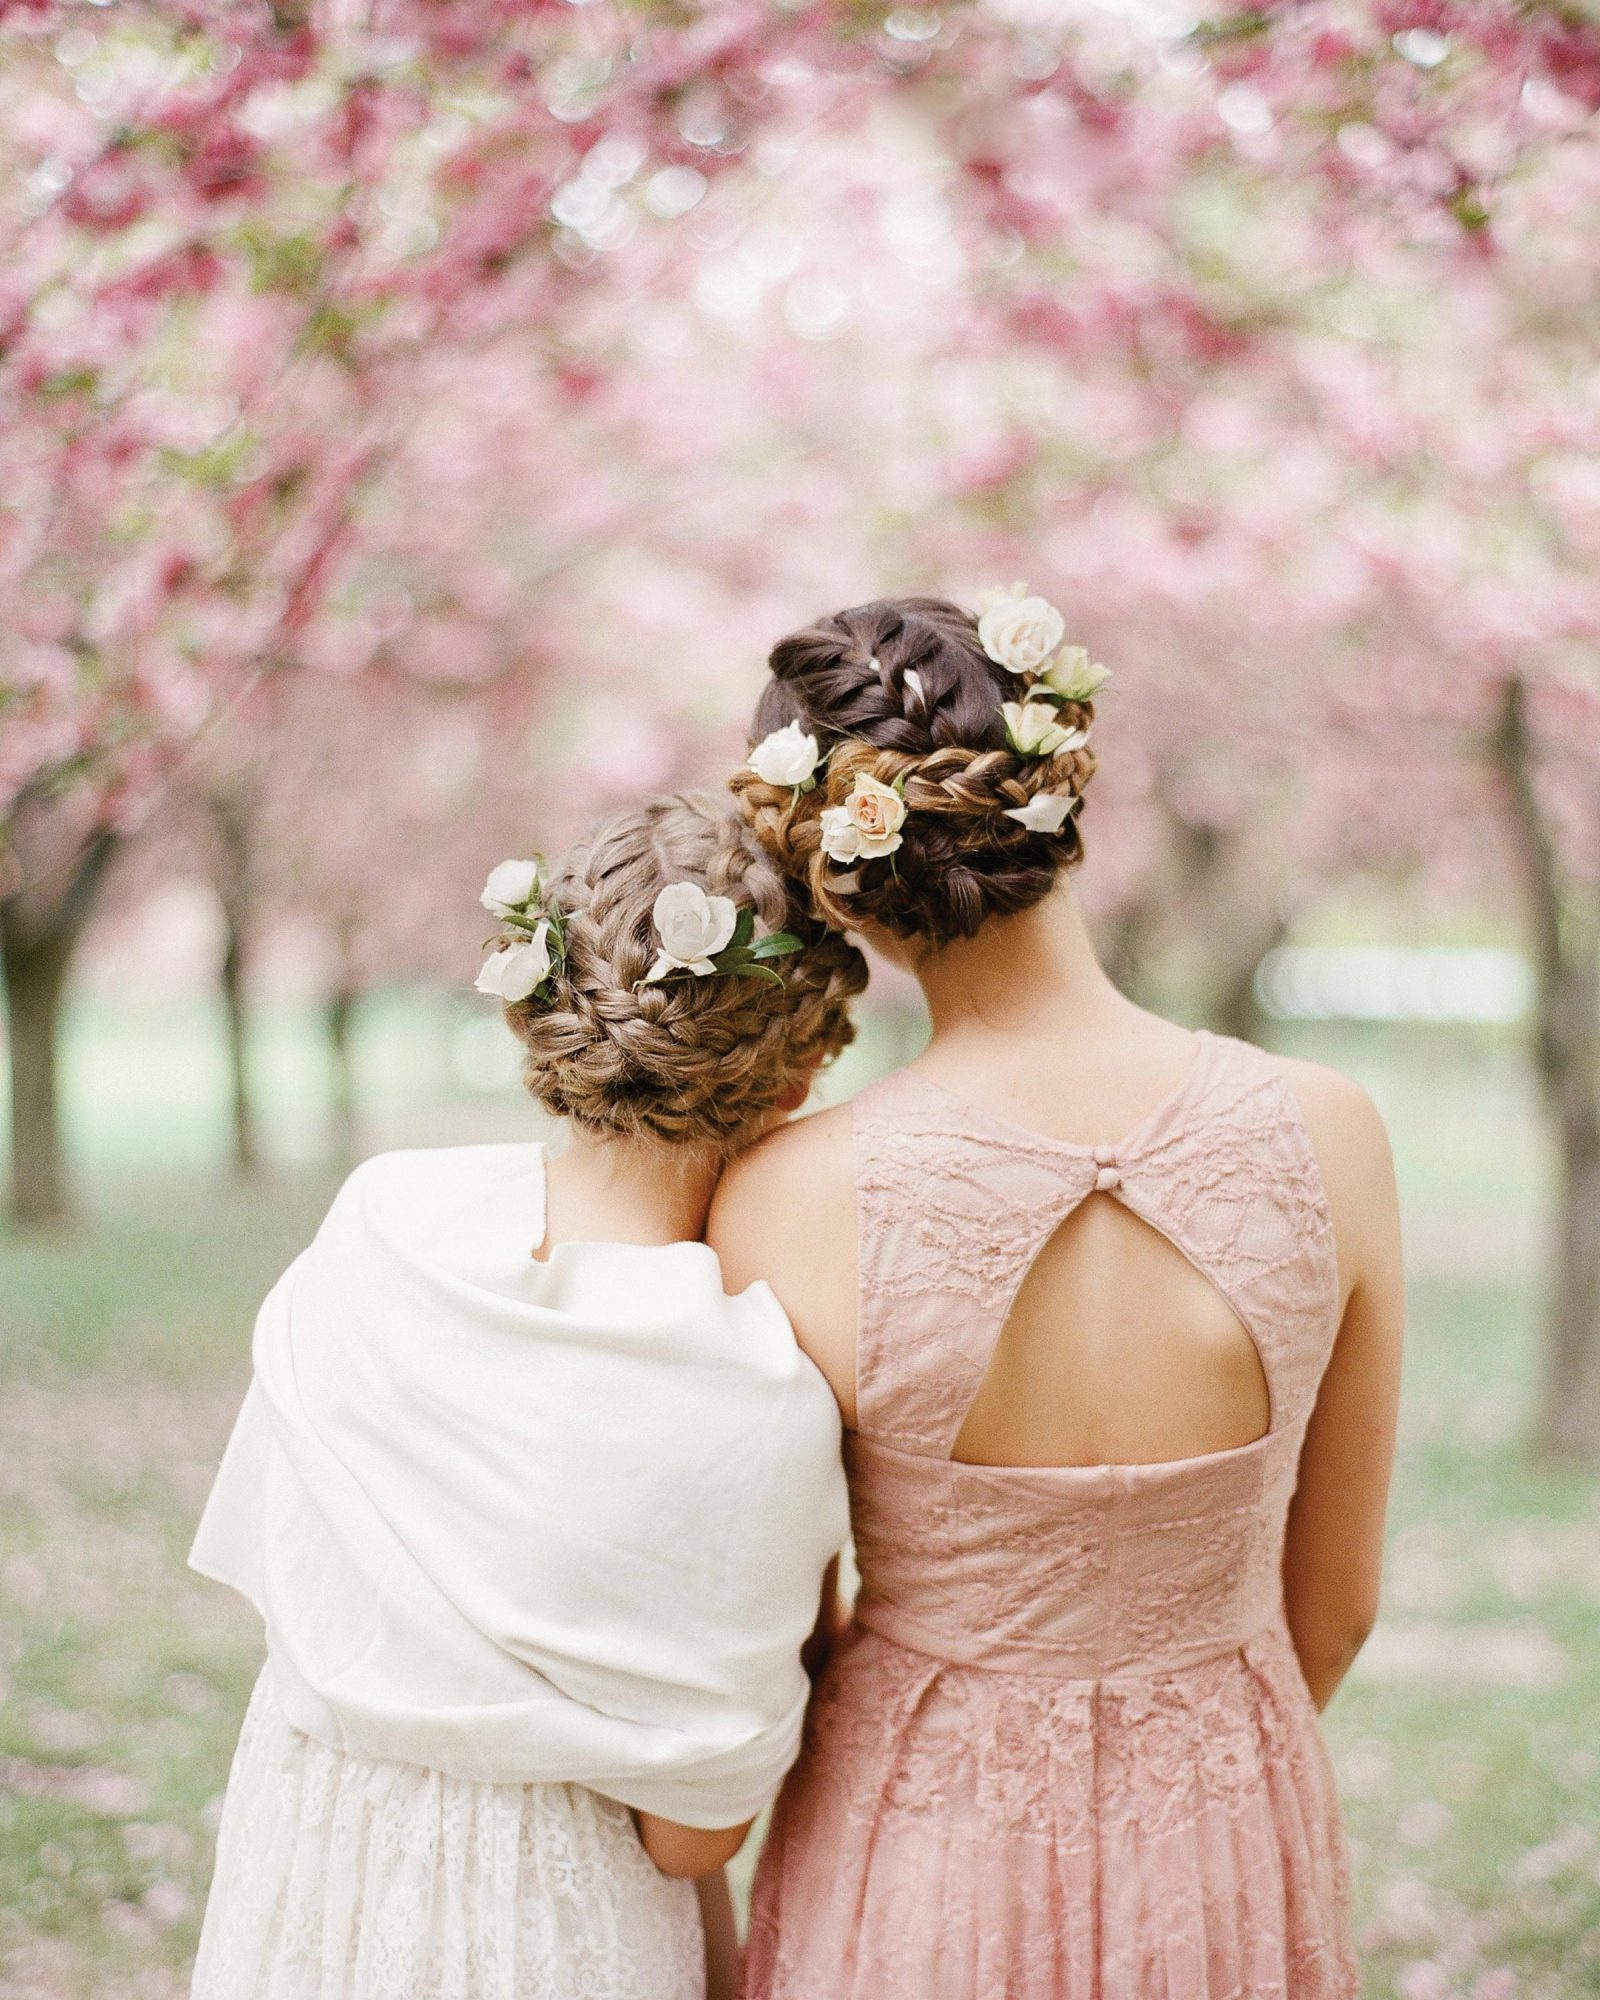 randy-mayo-real-wedding-junior-bridesmaids-hair-dresses.jpg